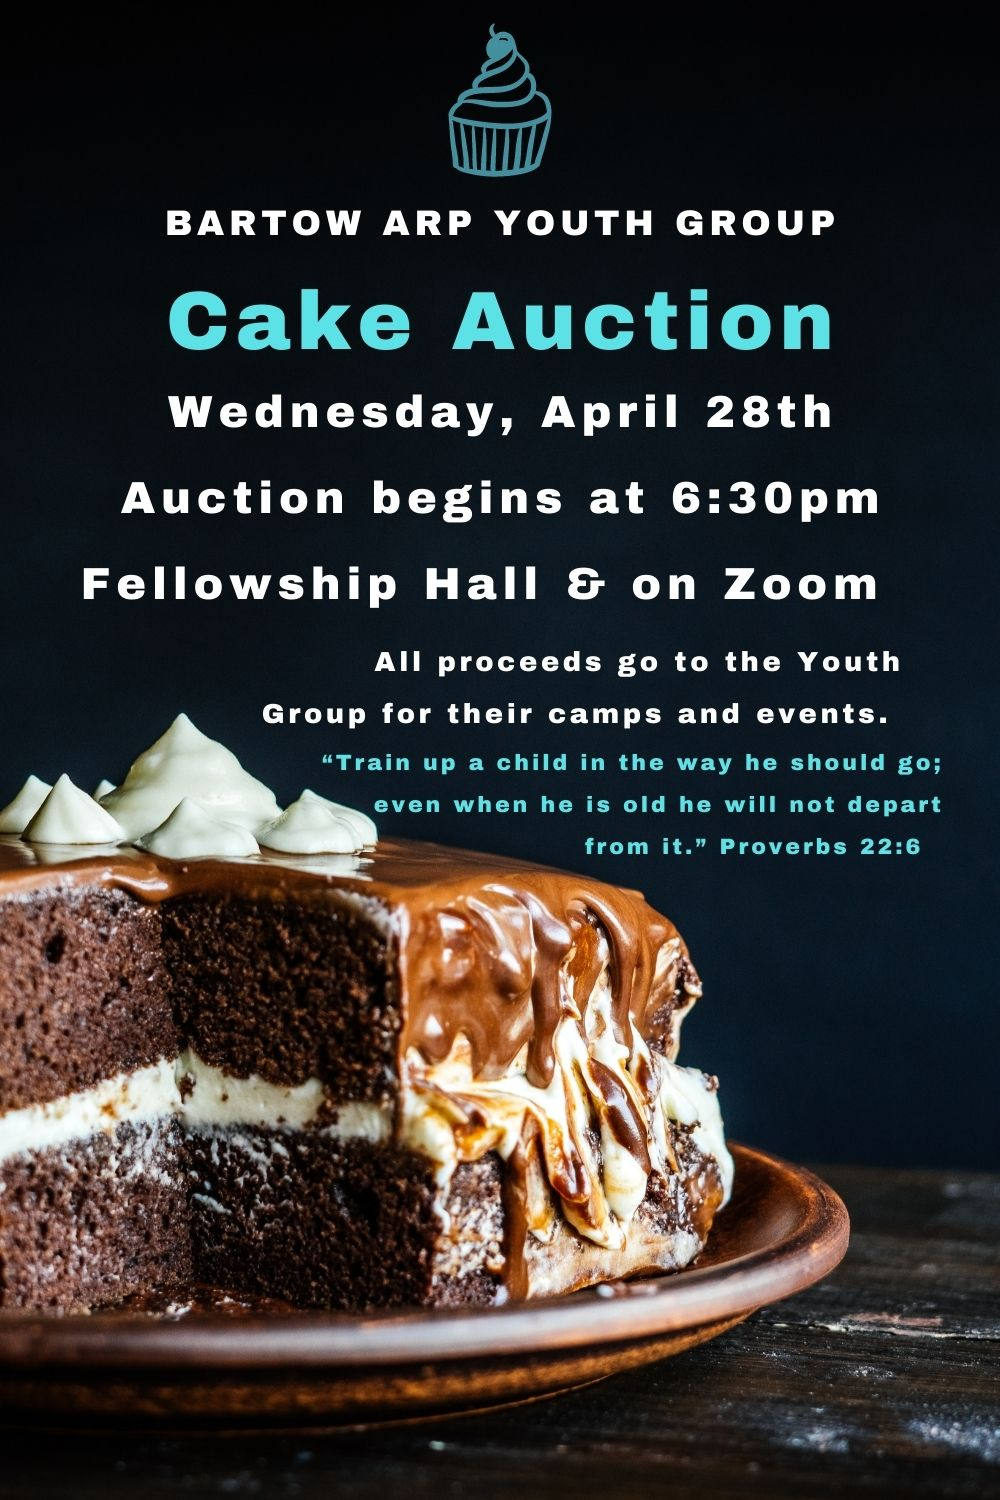 Updated Youth Cake Auction 3-30-21